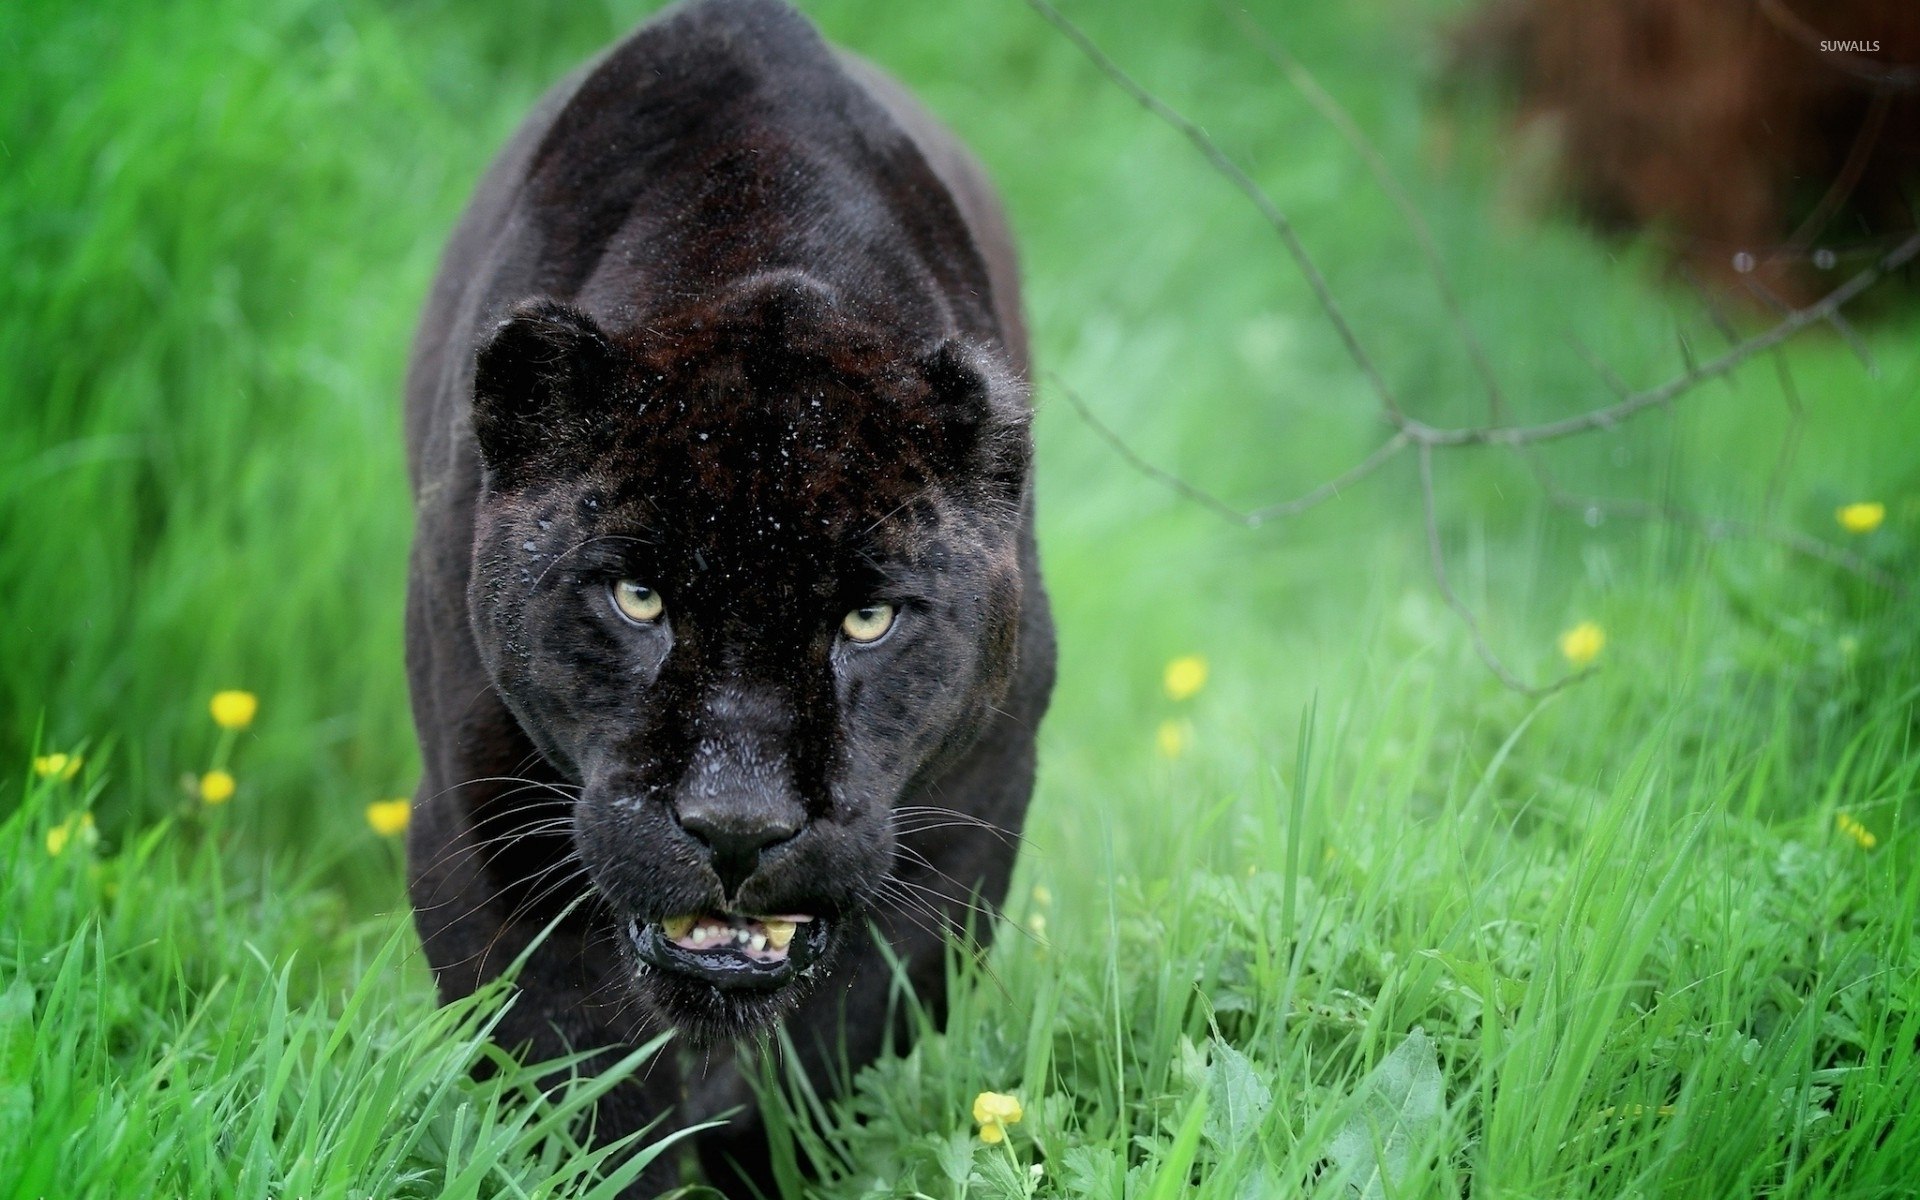 Black Panther Sneaking In The Green Grass Wallpaper Animal Wallpapers 52603